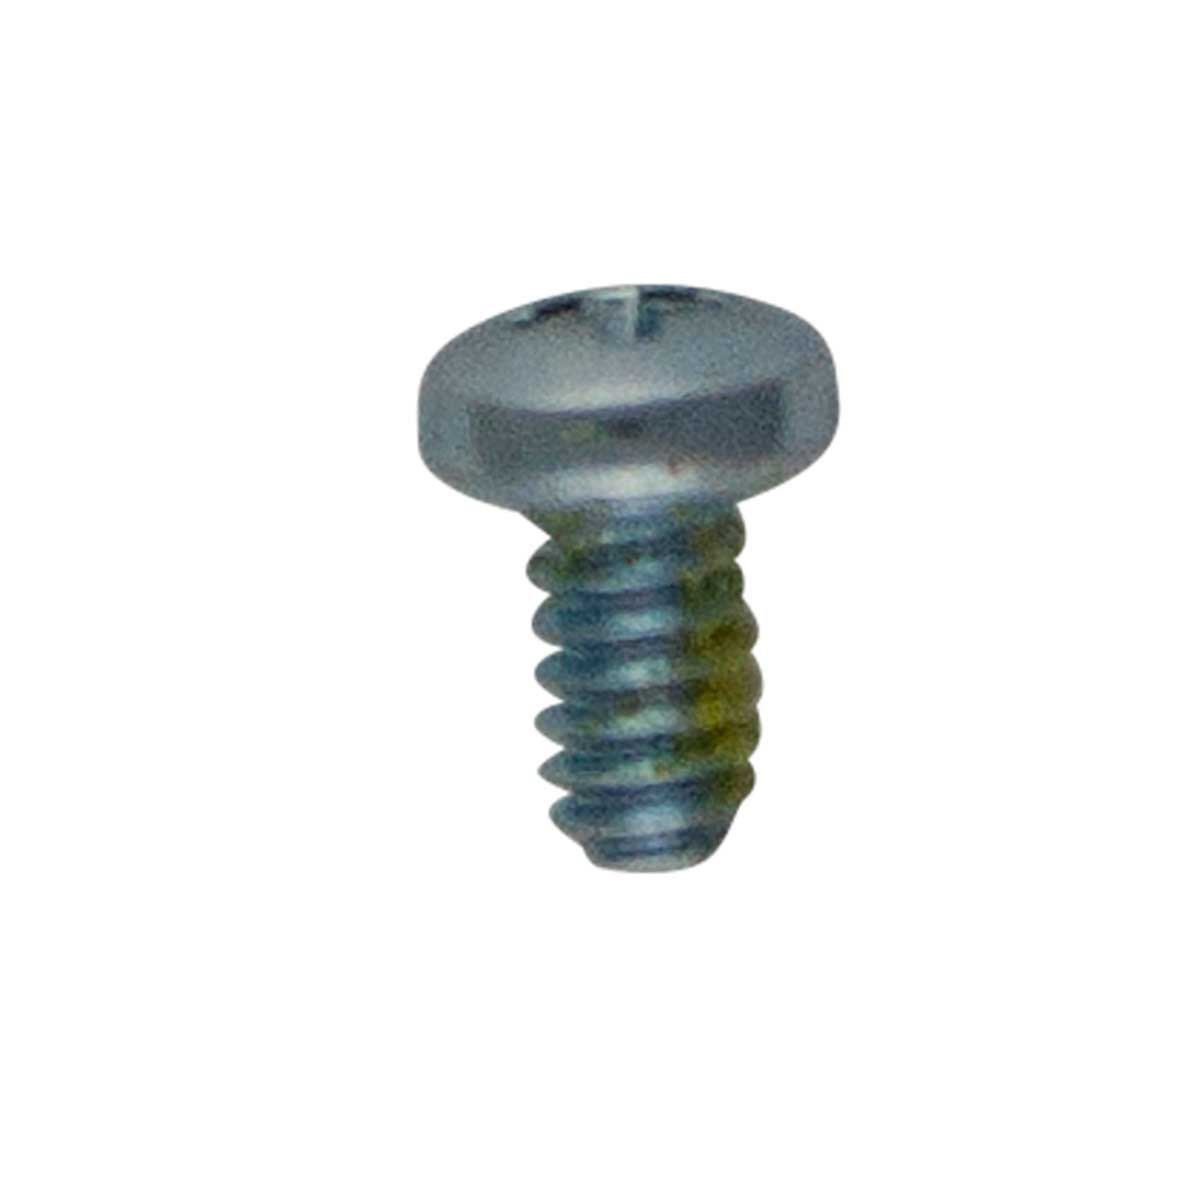 Buy Screws For Andis Blade Drive at Ryan's Pet Supplies